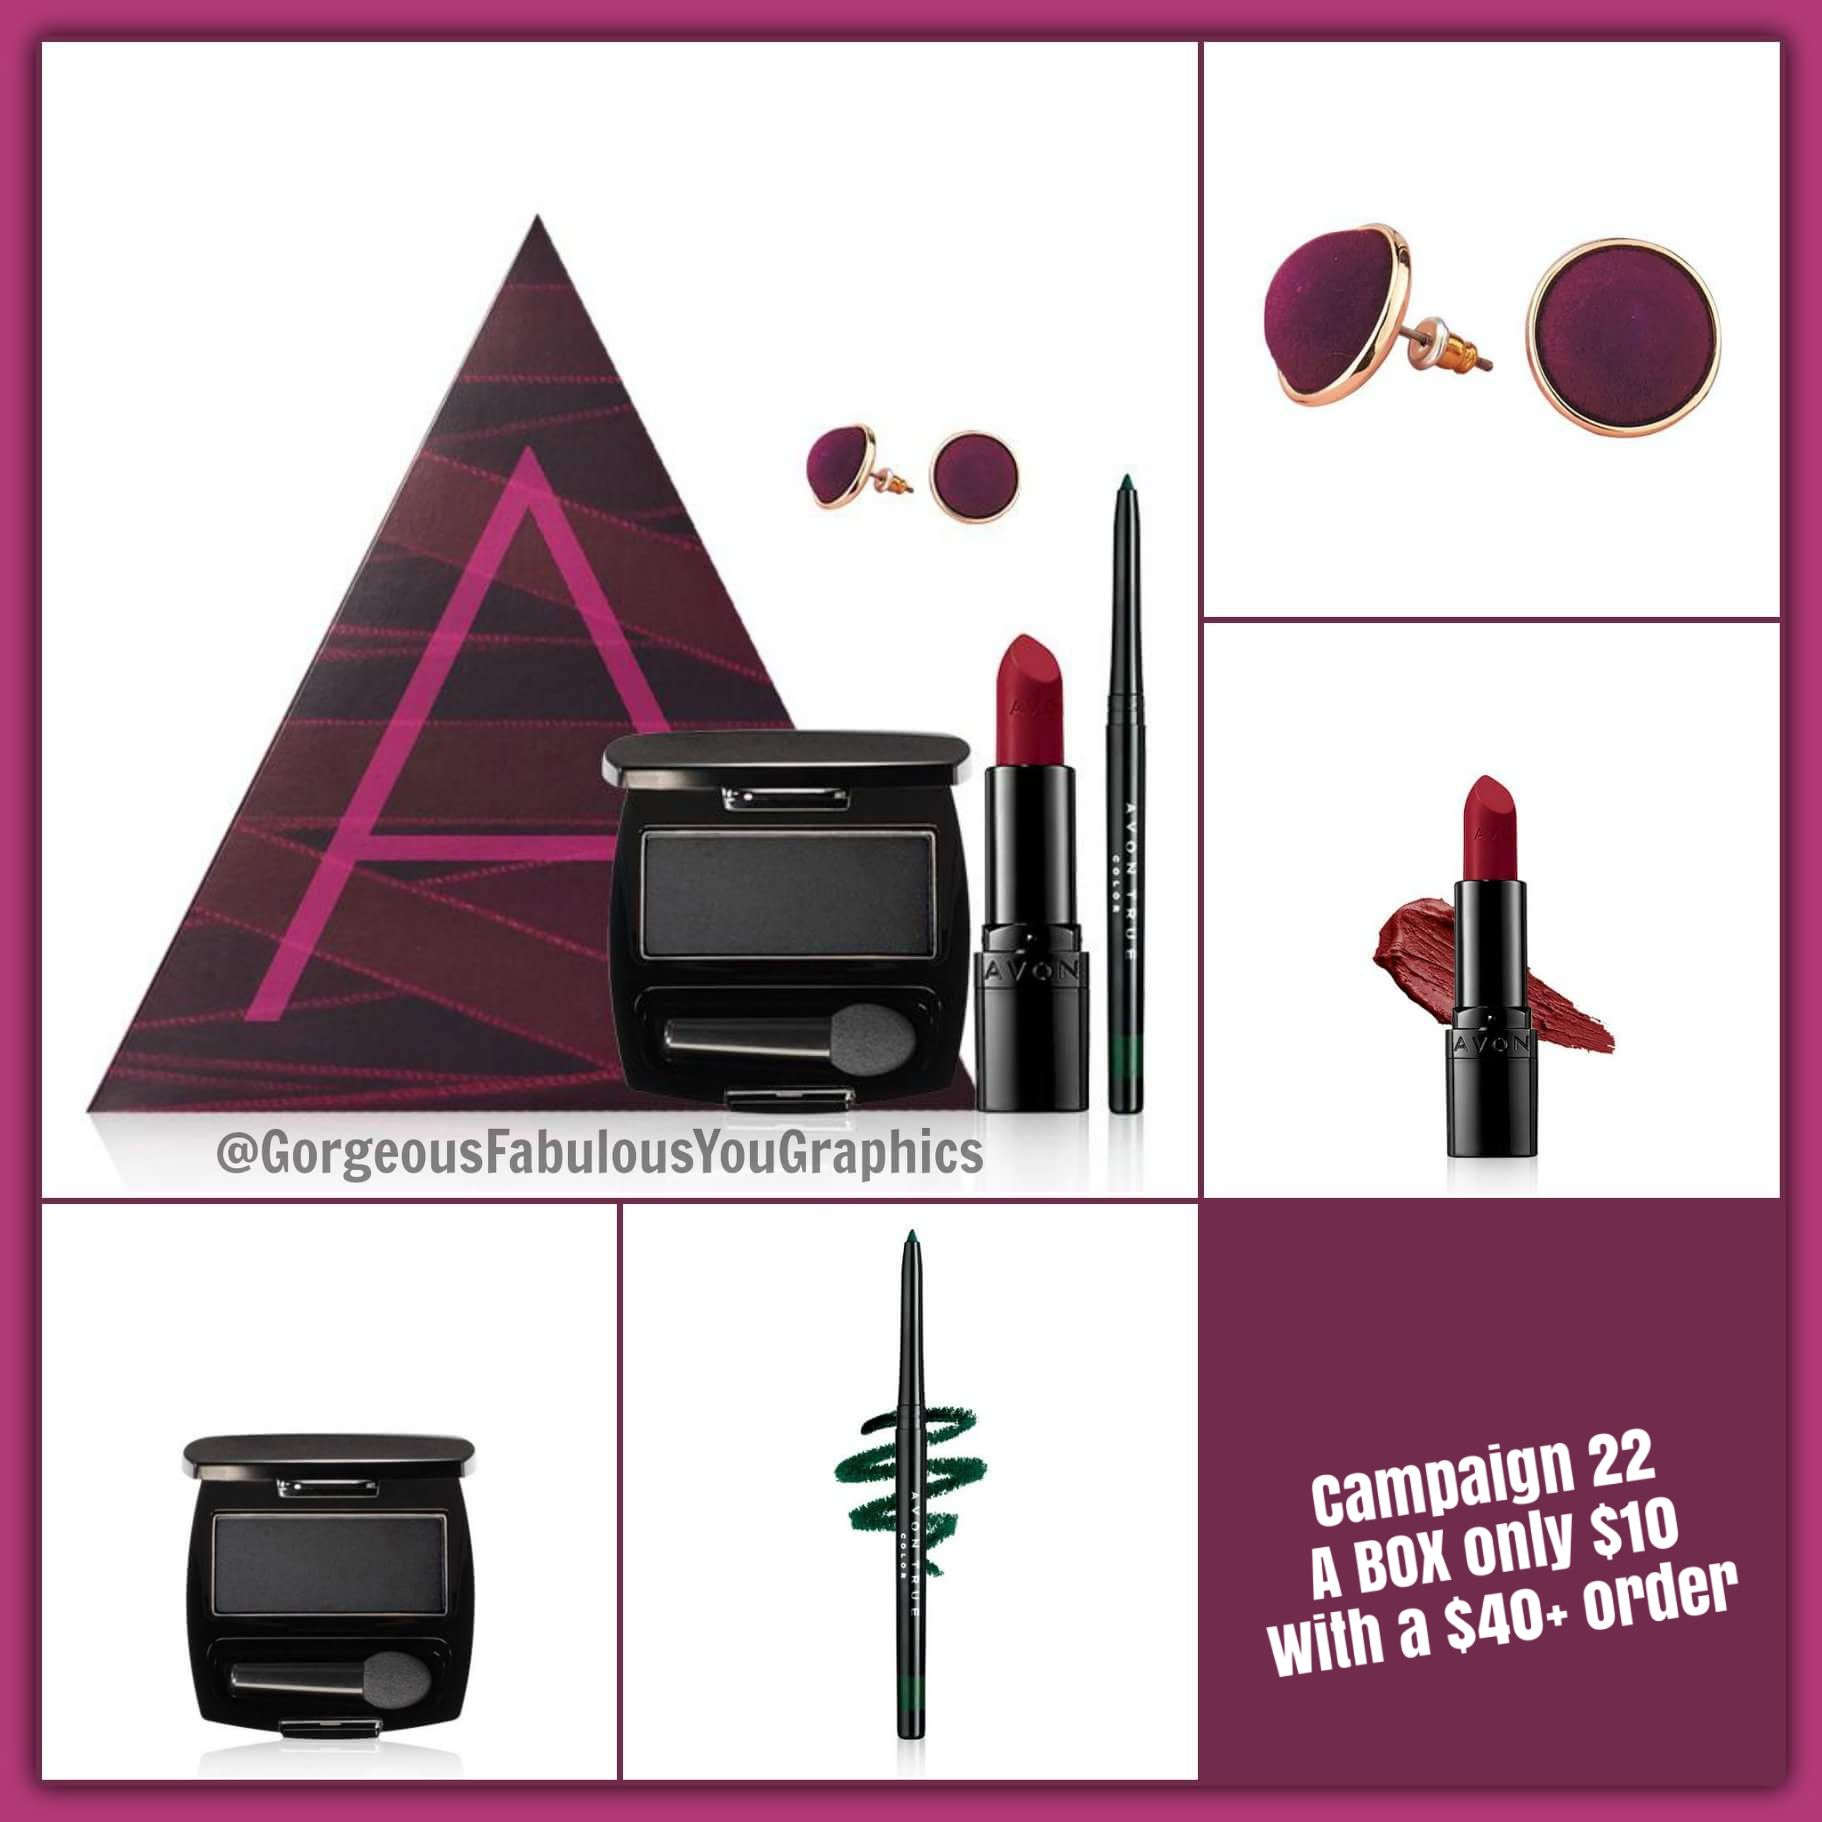 Campaign 22 A BOX for only 10 with a 40+ Avon order